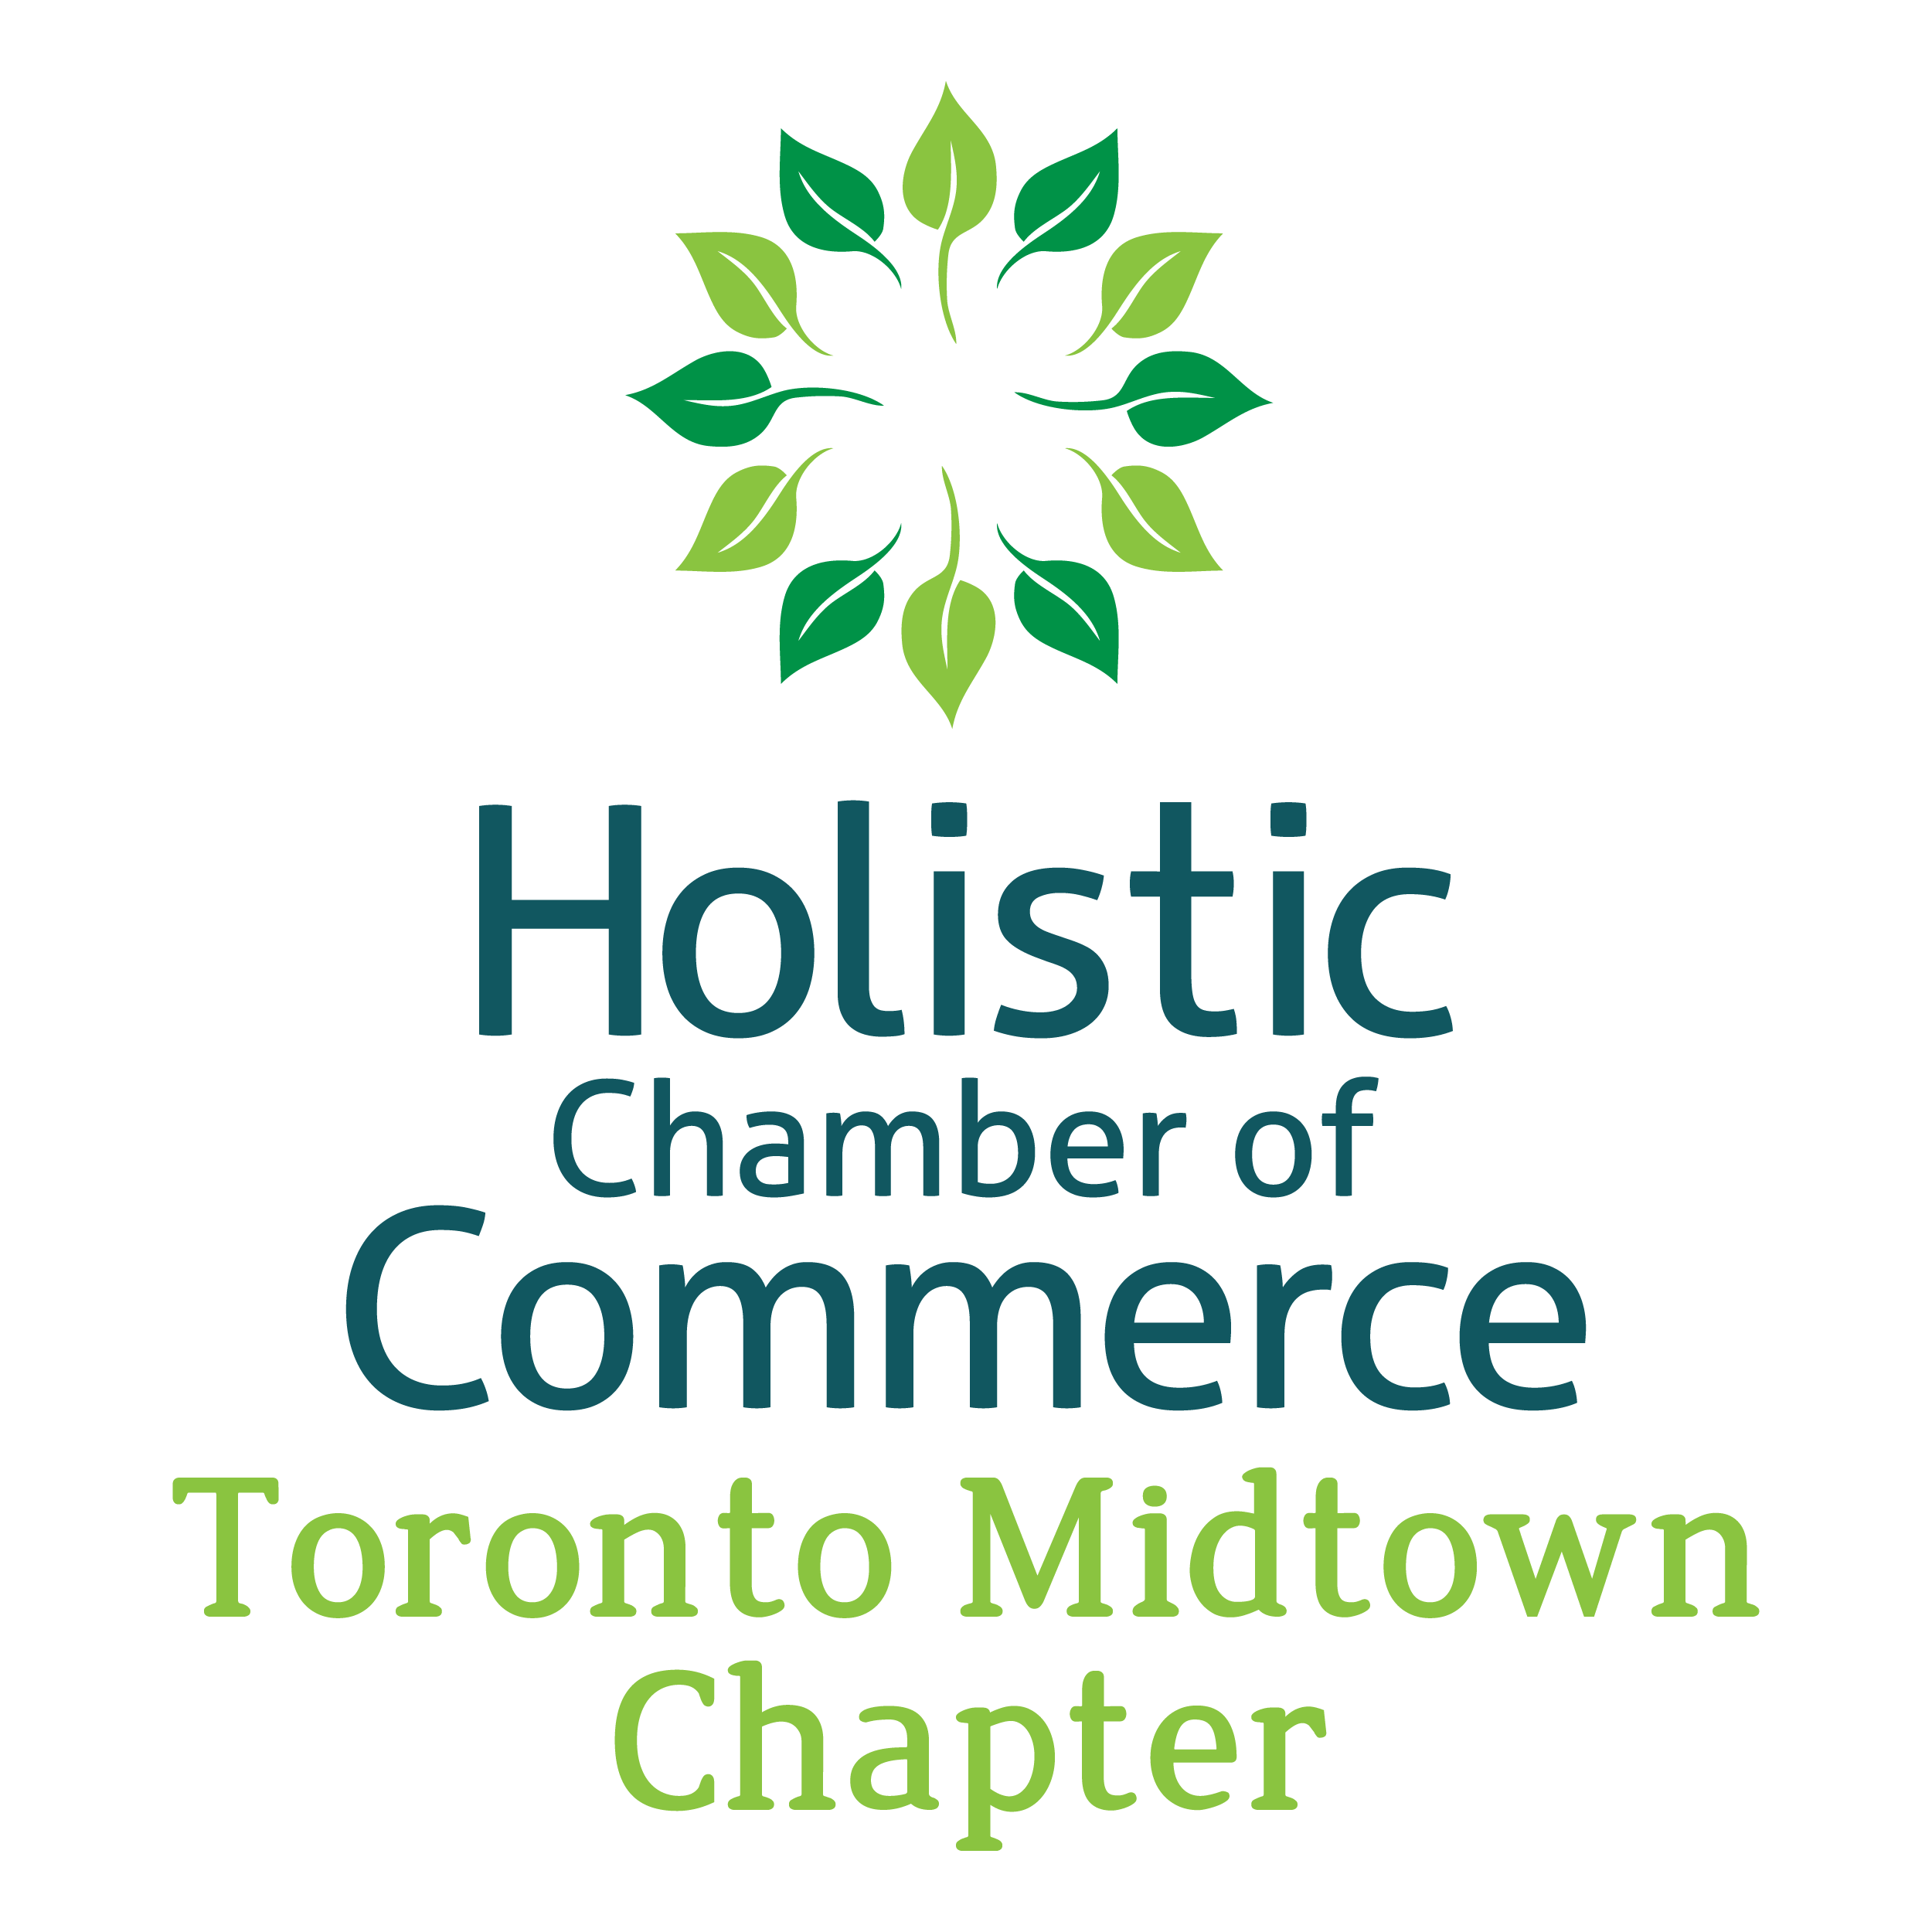 Toronto Midtown Chapter